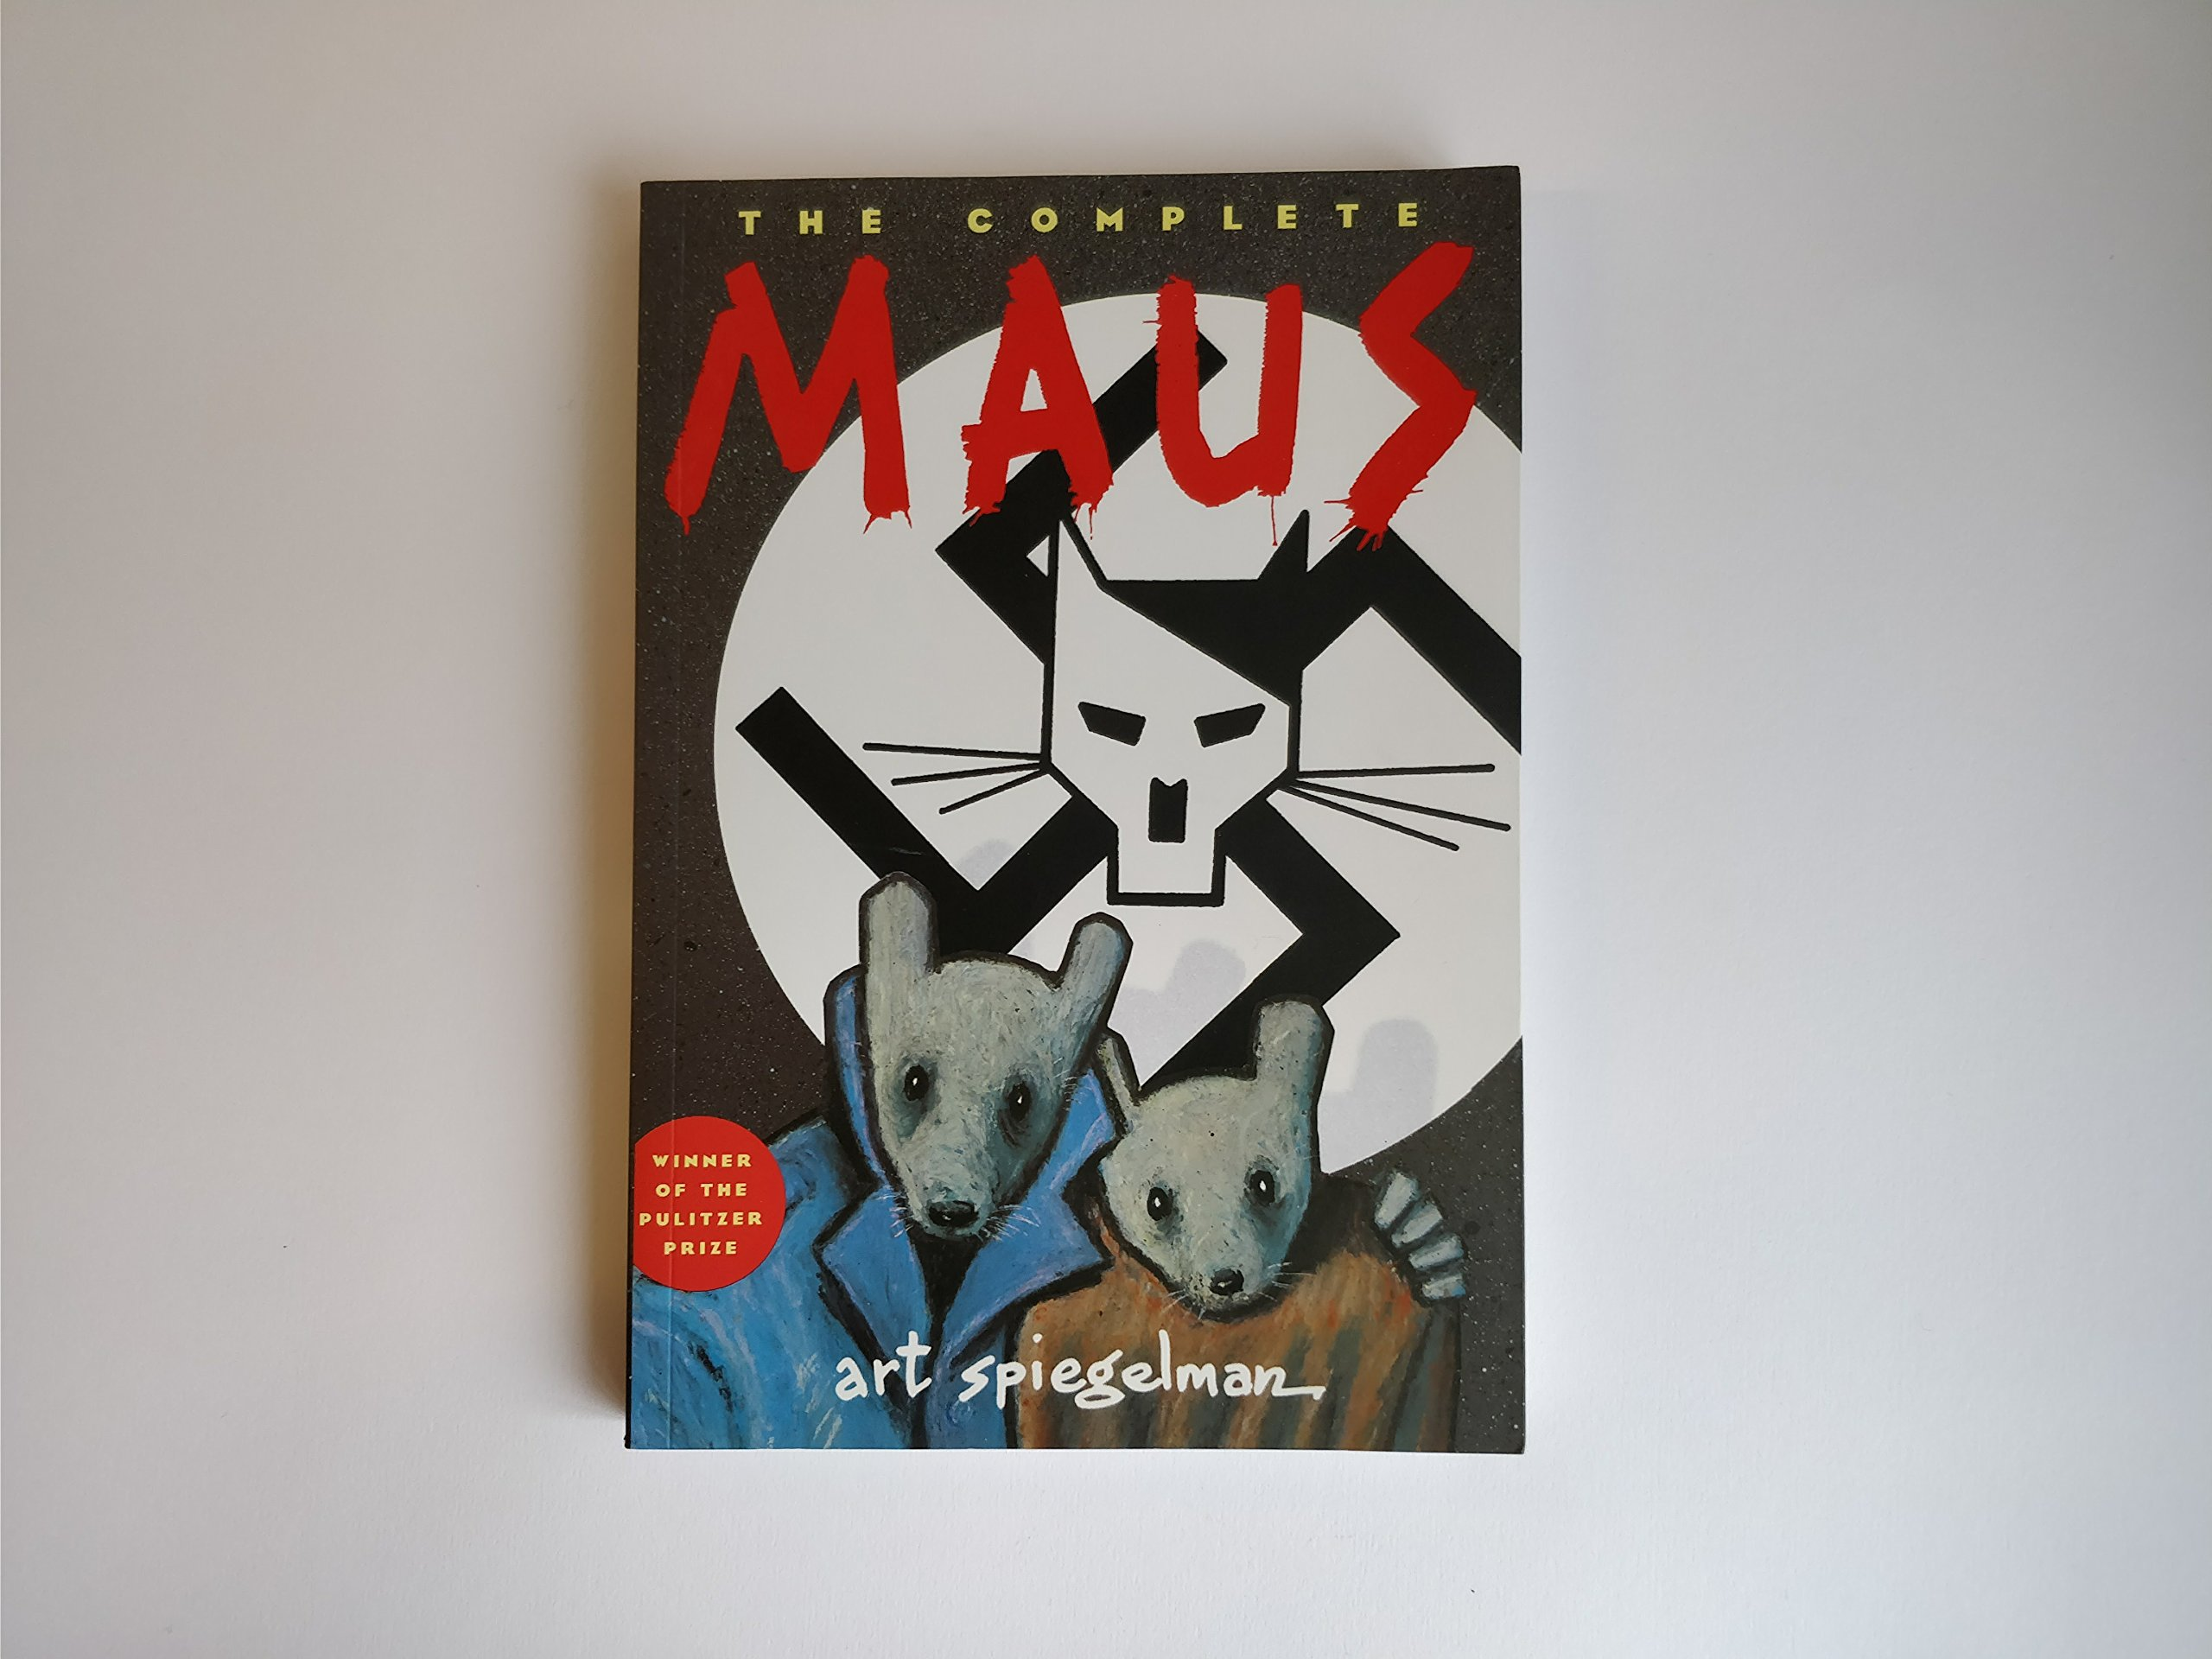 The complete maus amazon art spiegelman 8601404203893 books fandeluxe Choice Image